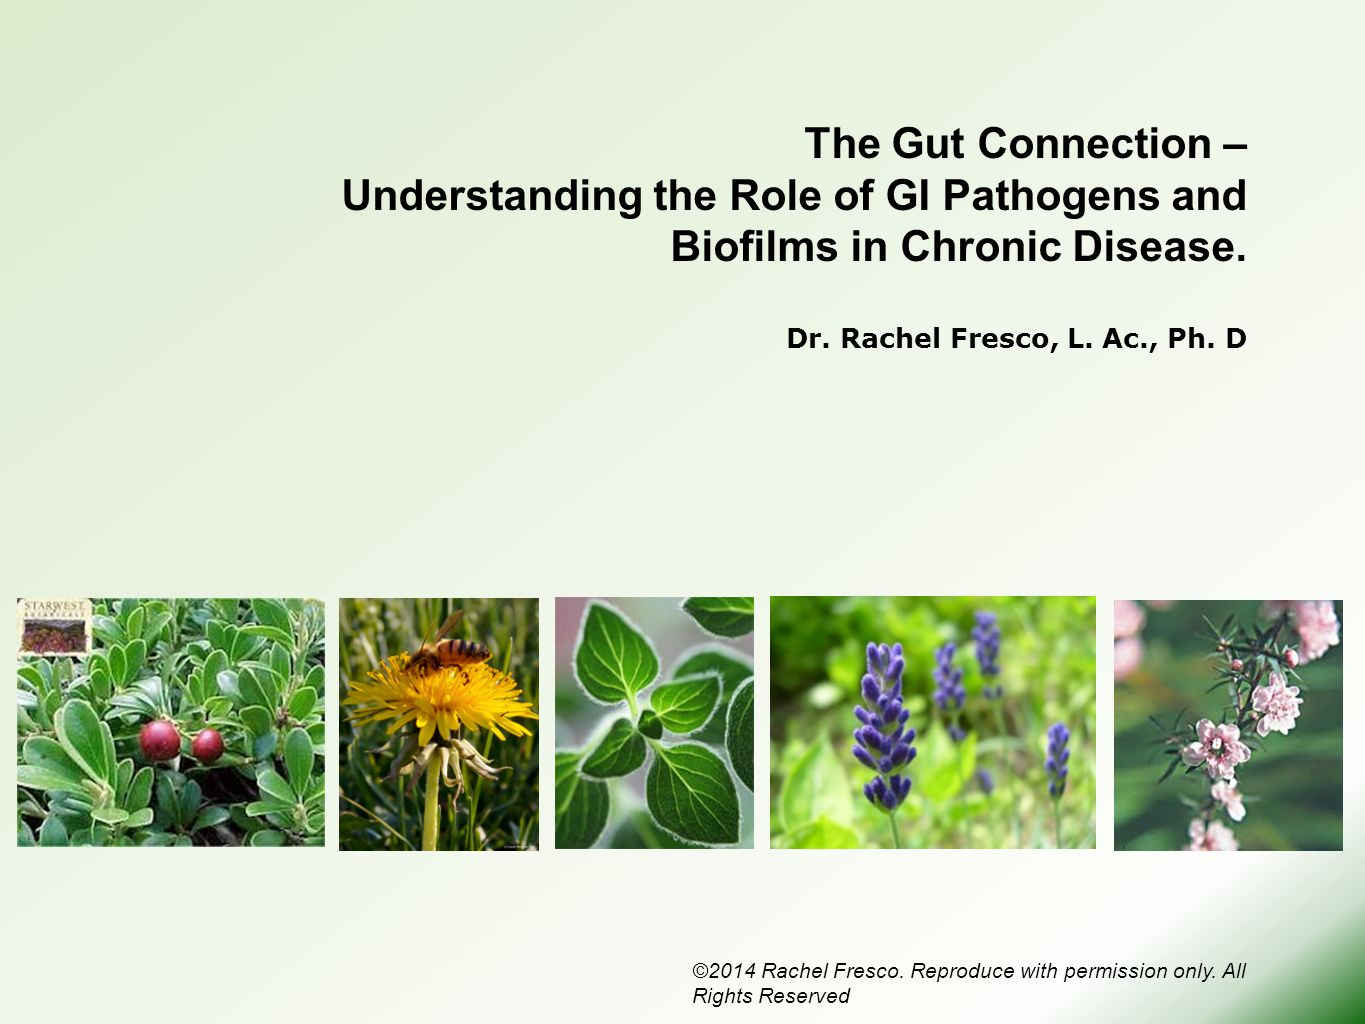 The Gut Connection – Understanding the Role of GI Pathogens and Biofilms in Chronic Disease. Dr. Rachel Fresco, L. Ac., Ph. D